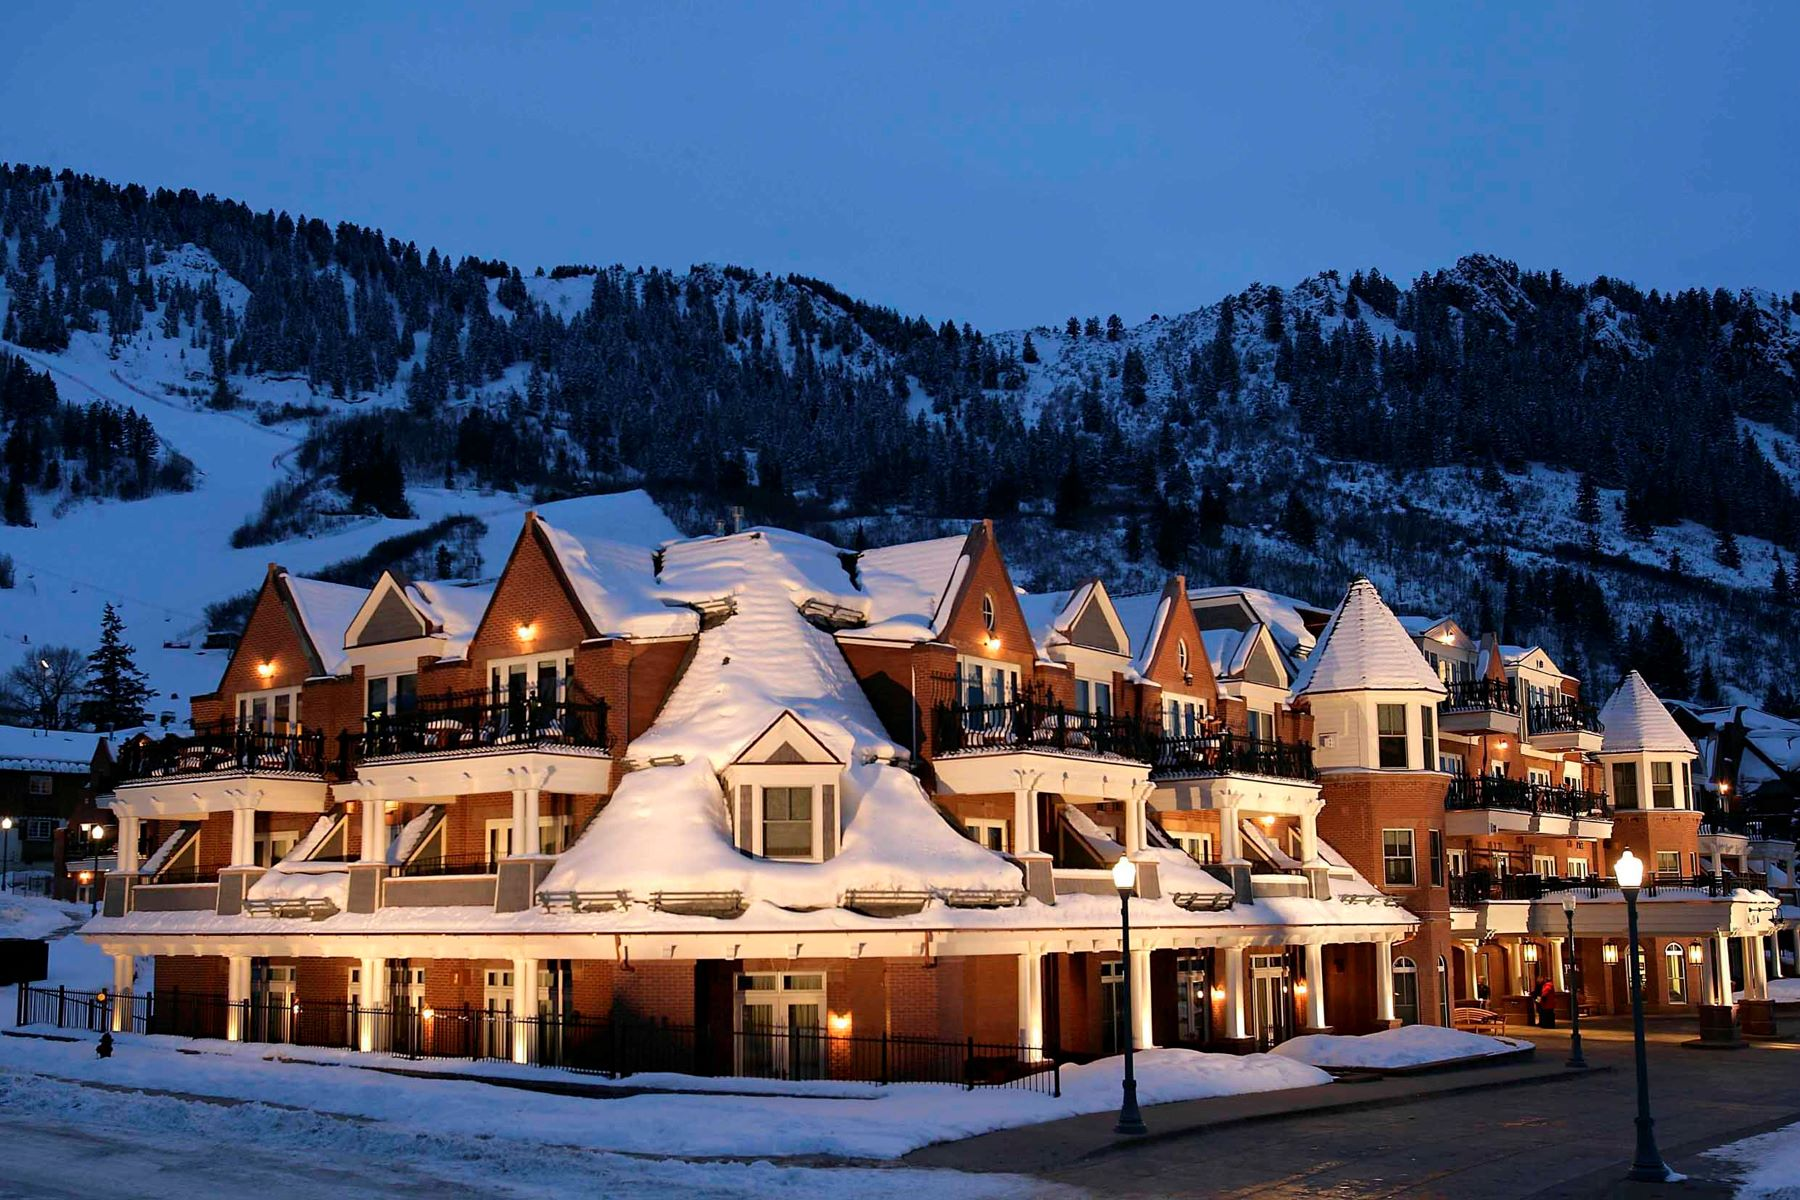 Condominium for Sale at Hyatt Grand Aspen 415 East Dean Street Unit #3 Week 26 Aspen, Colorado 81611 United States